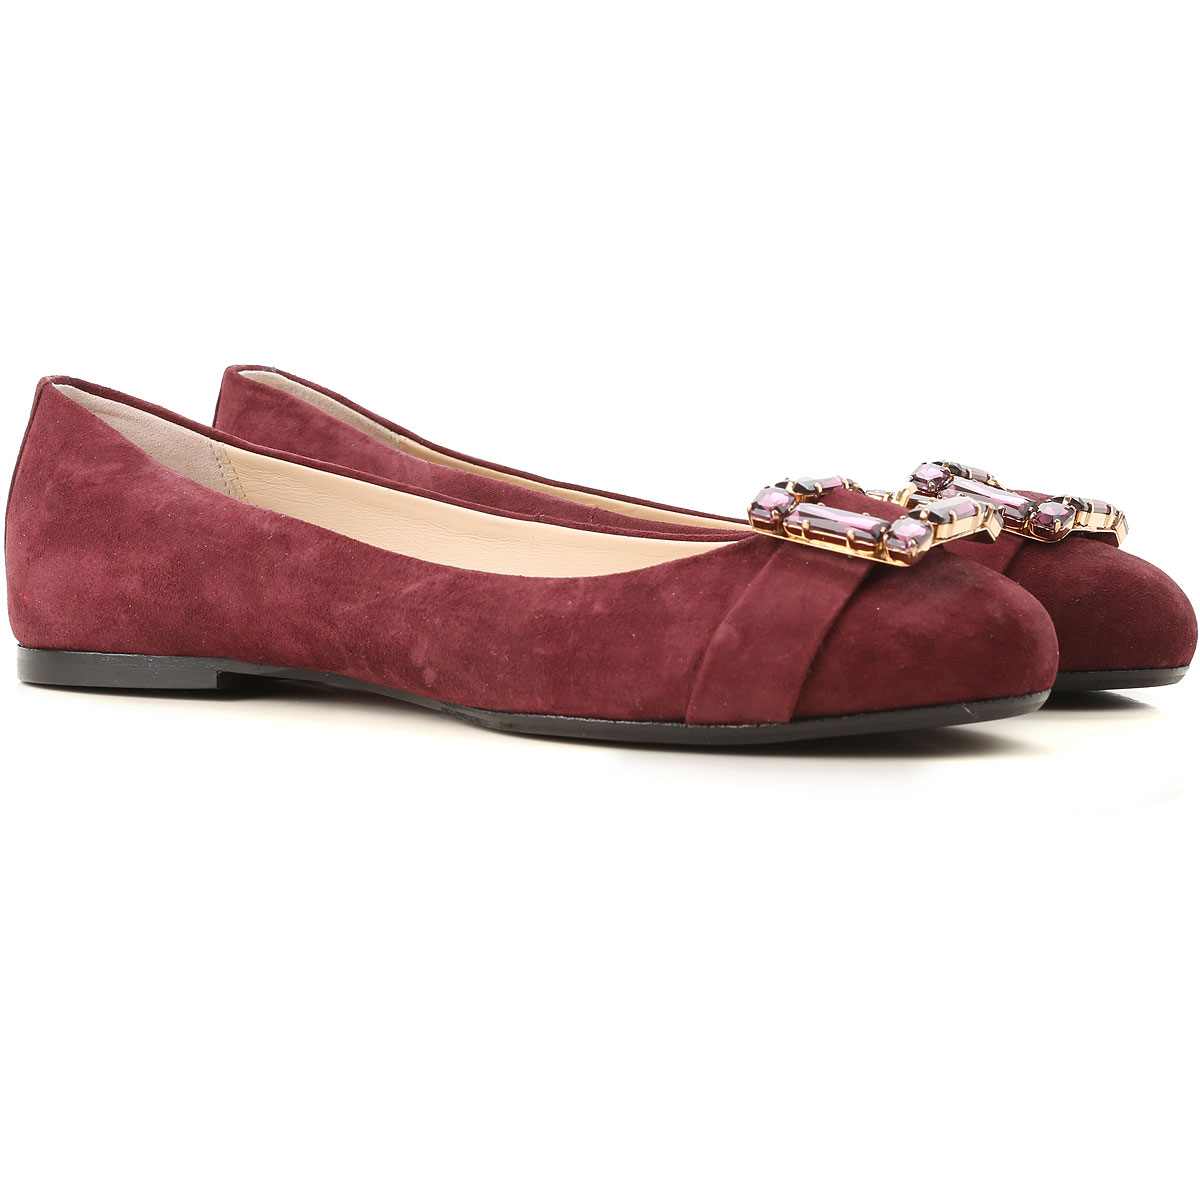 Image of Anna Baiguera Ballet Flats Ballerina Shoes for Women, Burgundy, Suede leather, 2017, 10 5 6 7 8